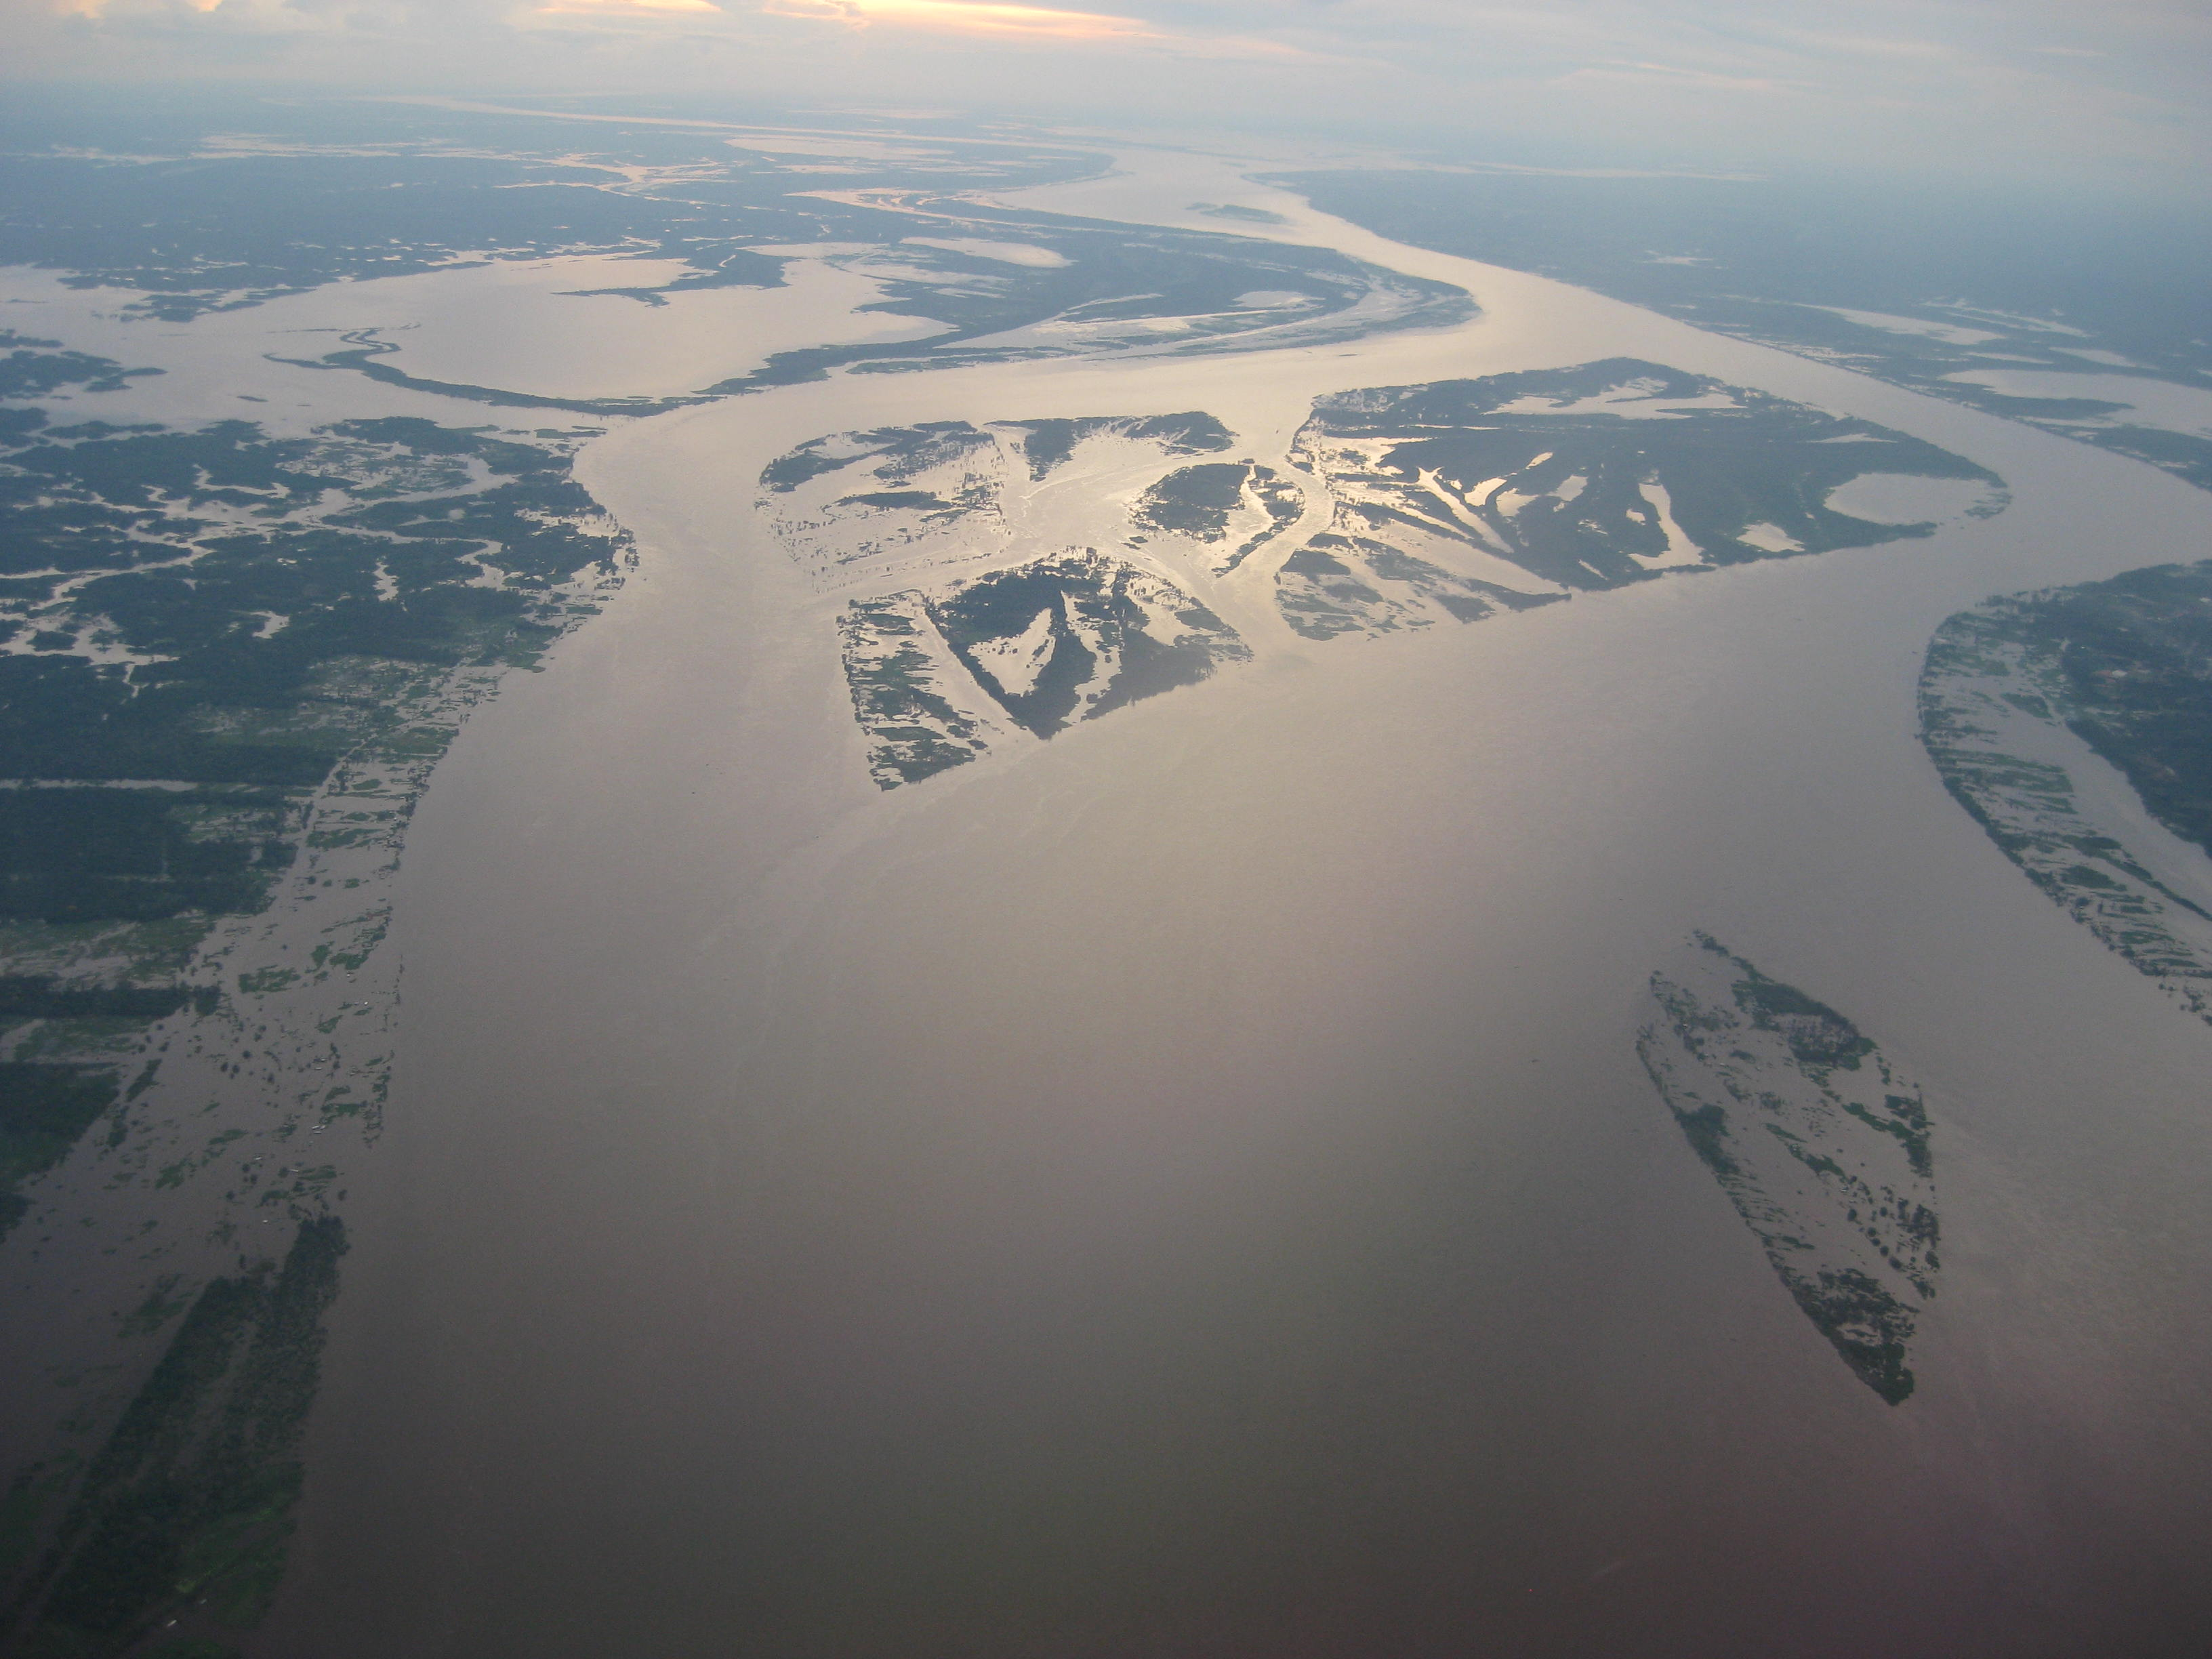 Anabranching pattern of the Solimões (Amazon) River, Brazil. (picture by E. M. Latrubesse)